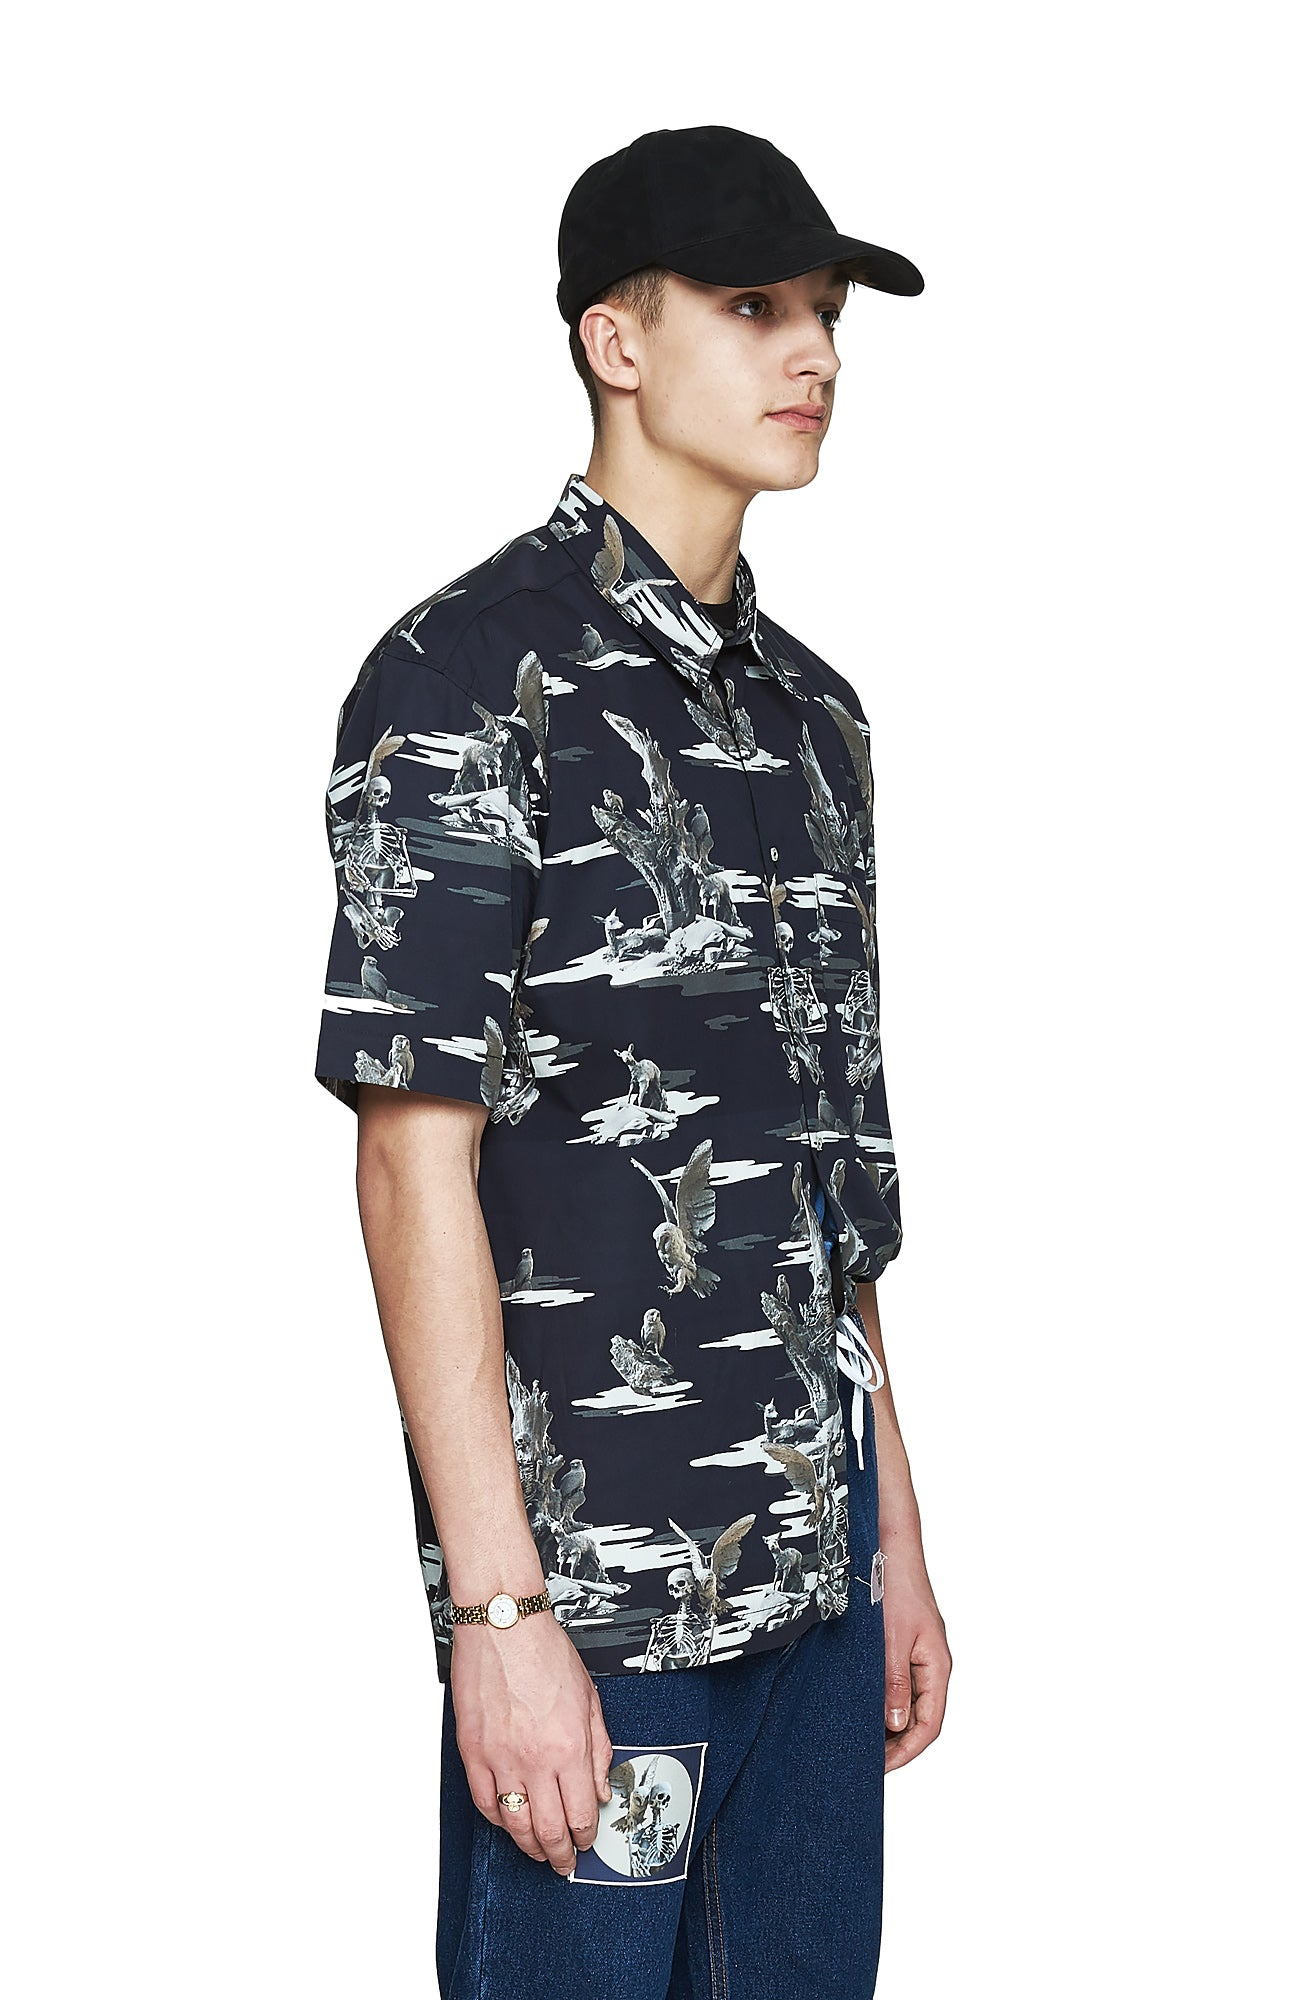 Paradise Camo Shirt - Men's Designer Brand - This Is Not Clothing - Lookbook Photo 2